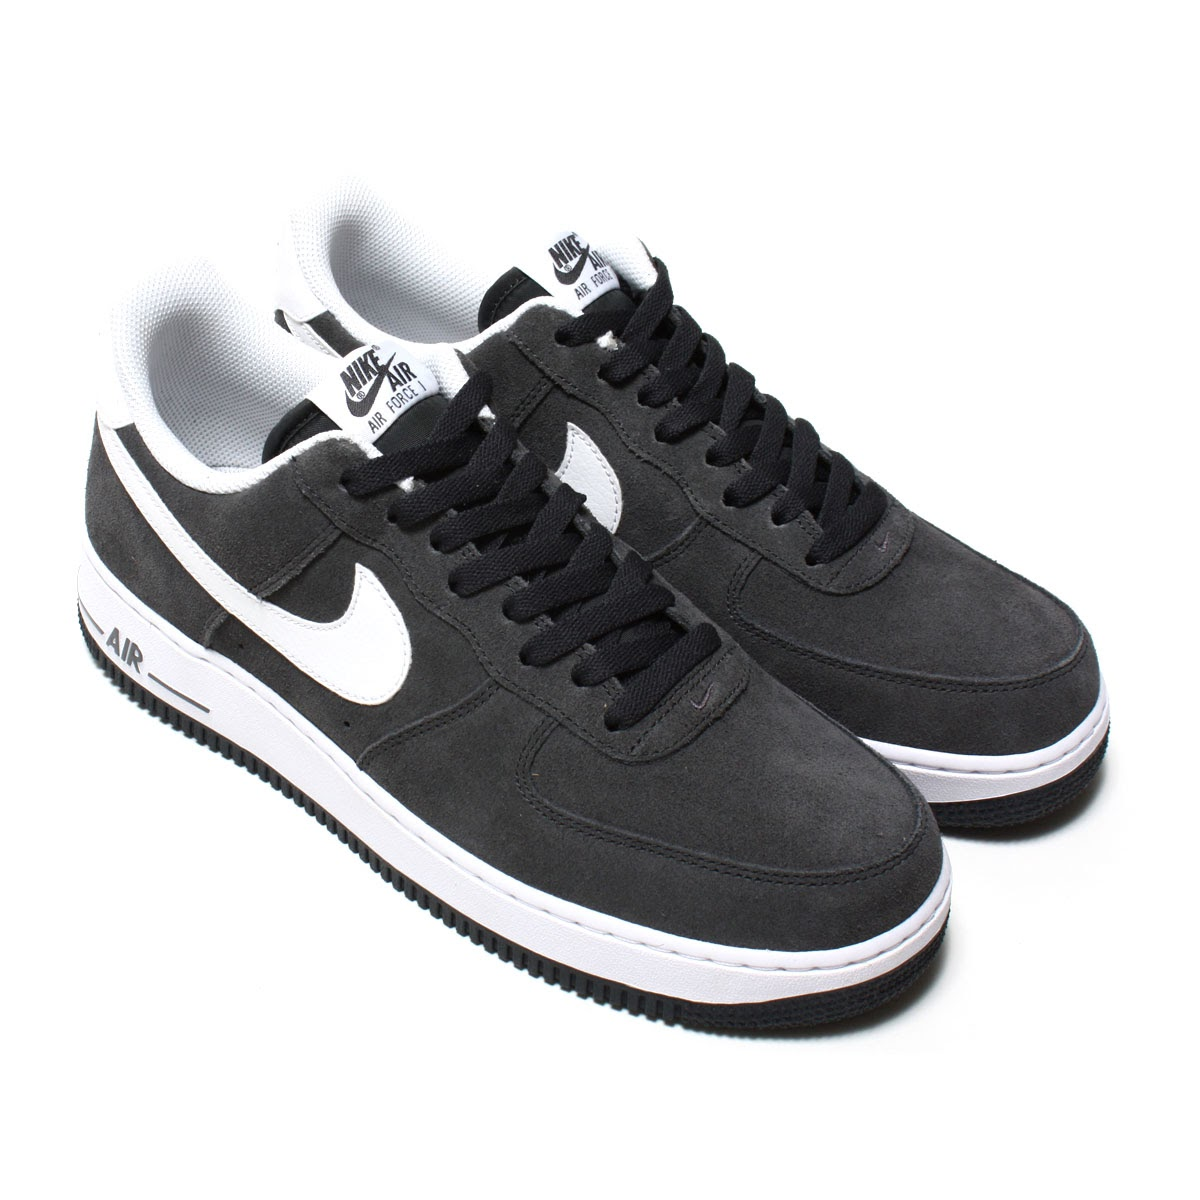 quality design 60d86 d7de3 NIKE AIR FORCE 1  07 (Nike Air Force 1 07) (ANTHRACITEWHITE) 17 SP-I